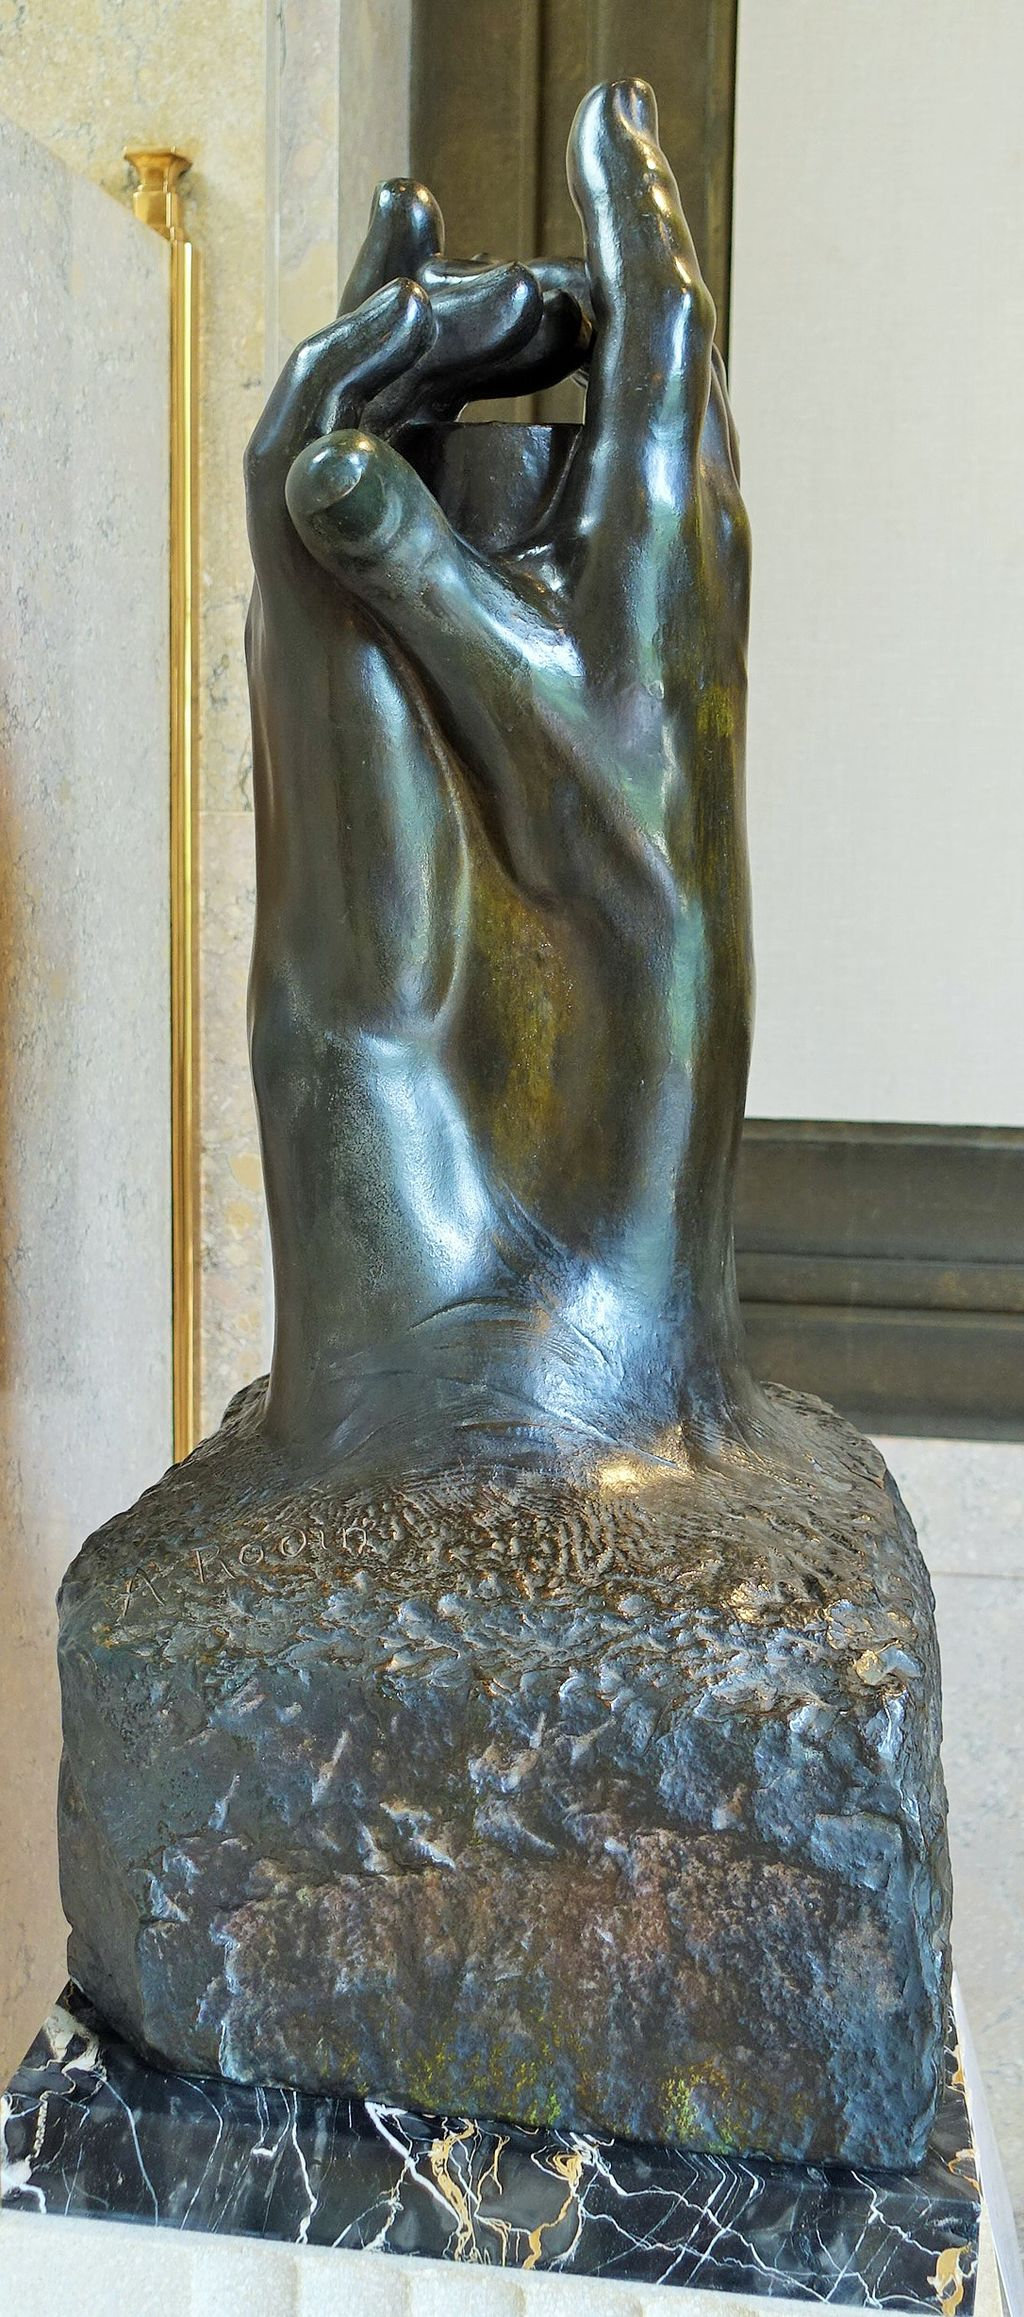 The Secret by Auguste Rodin